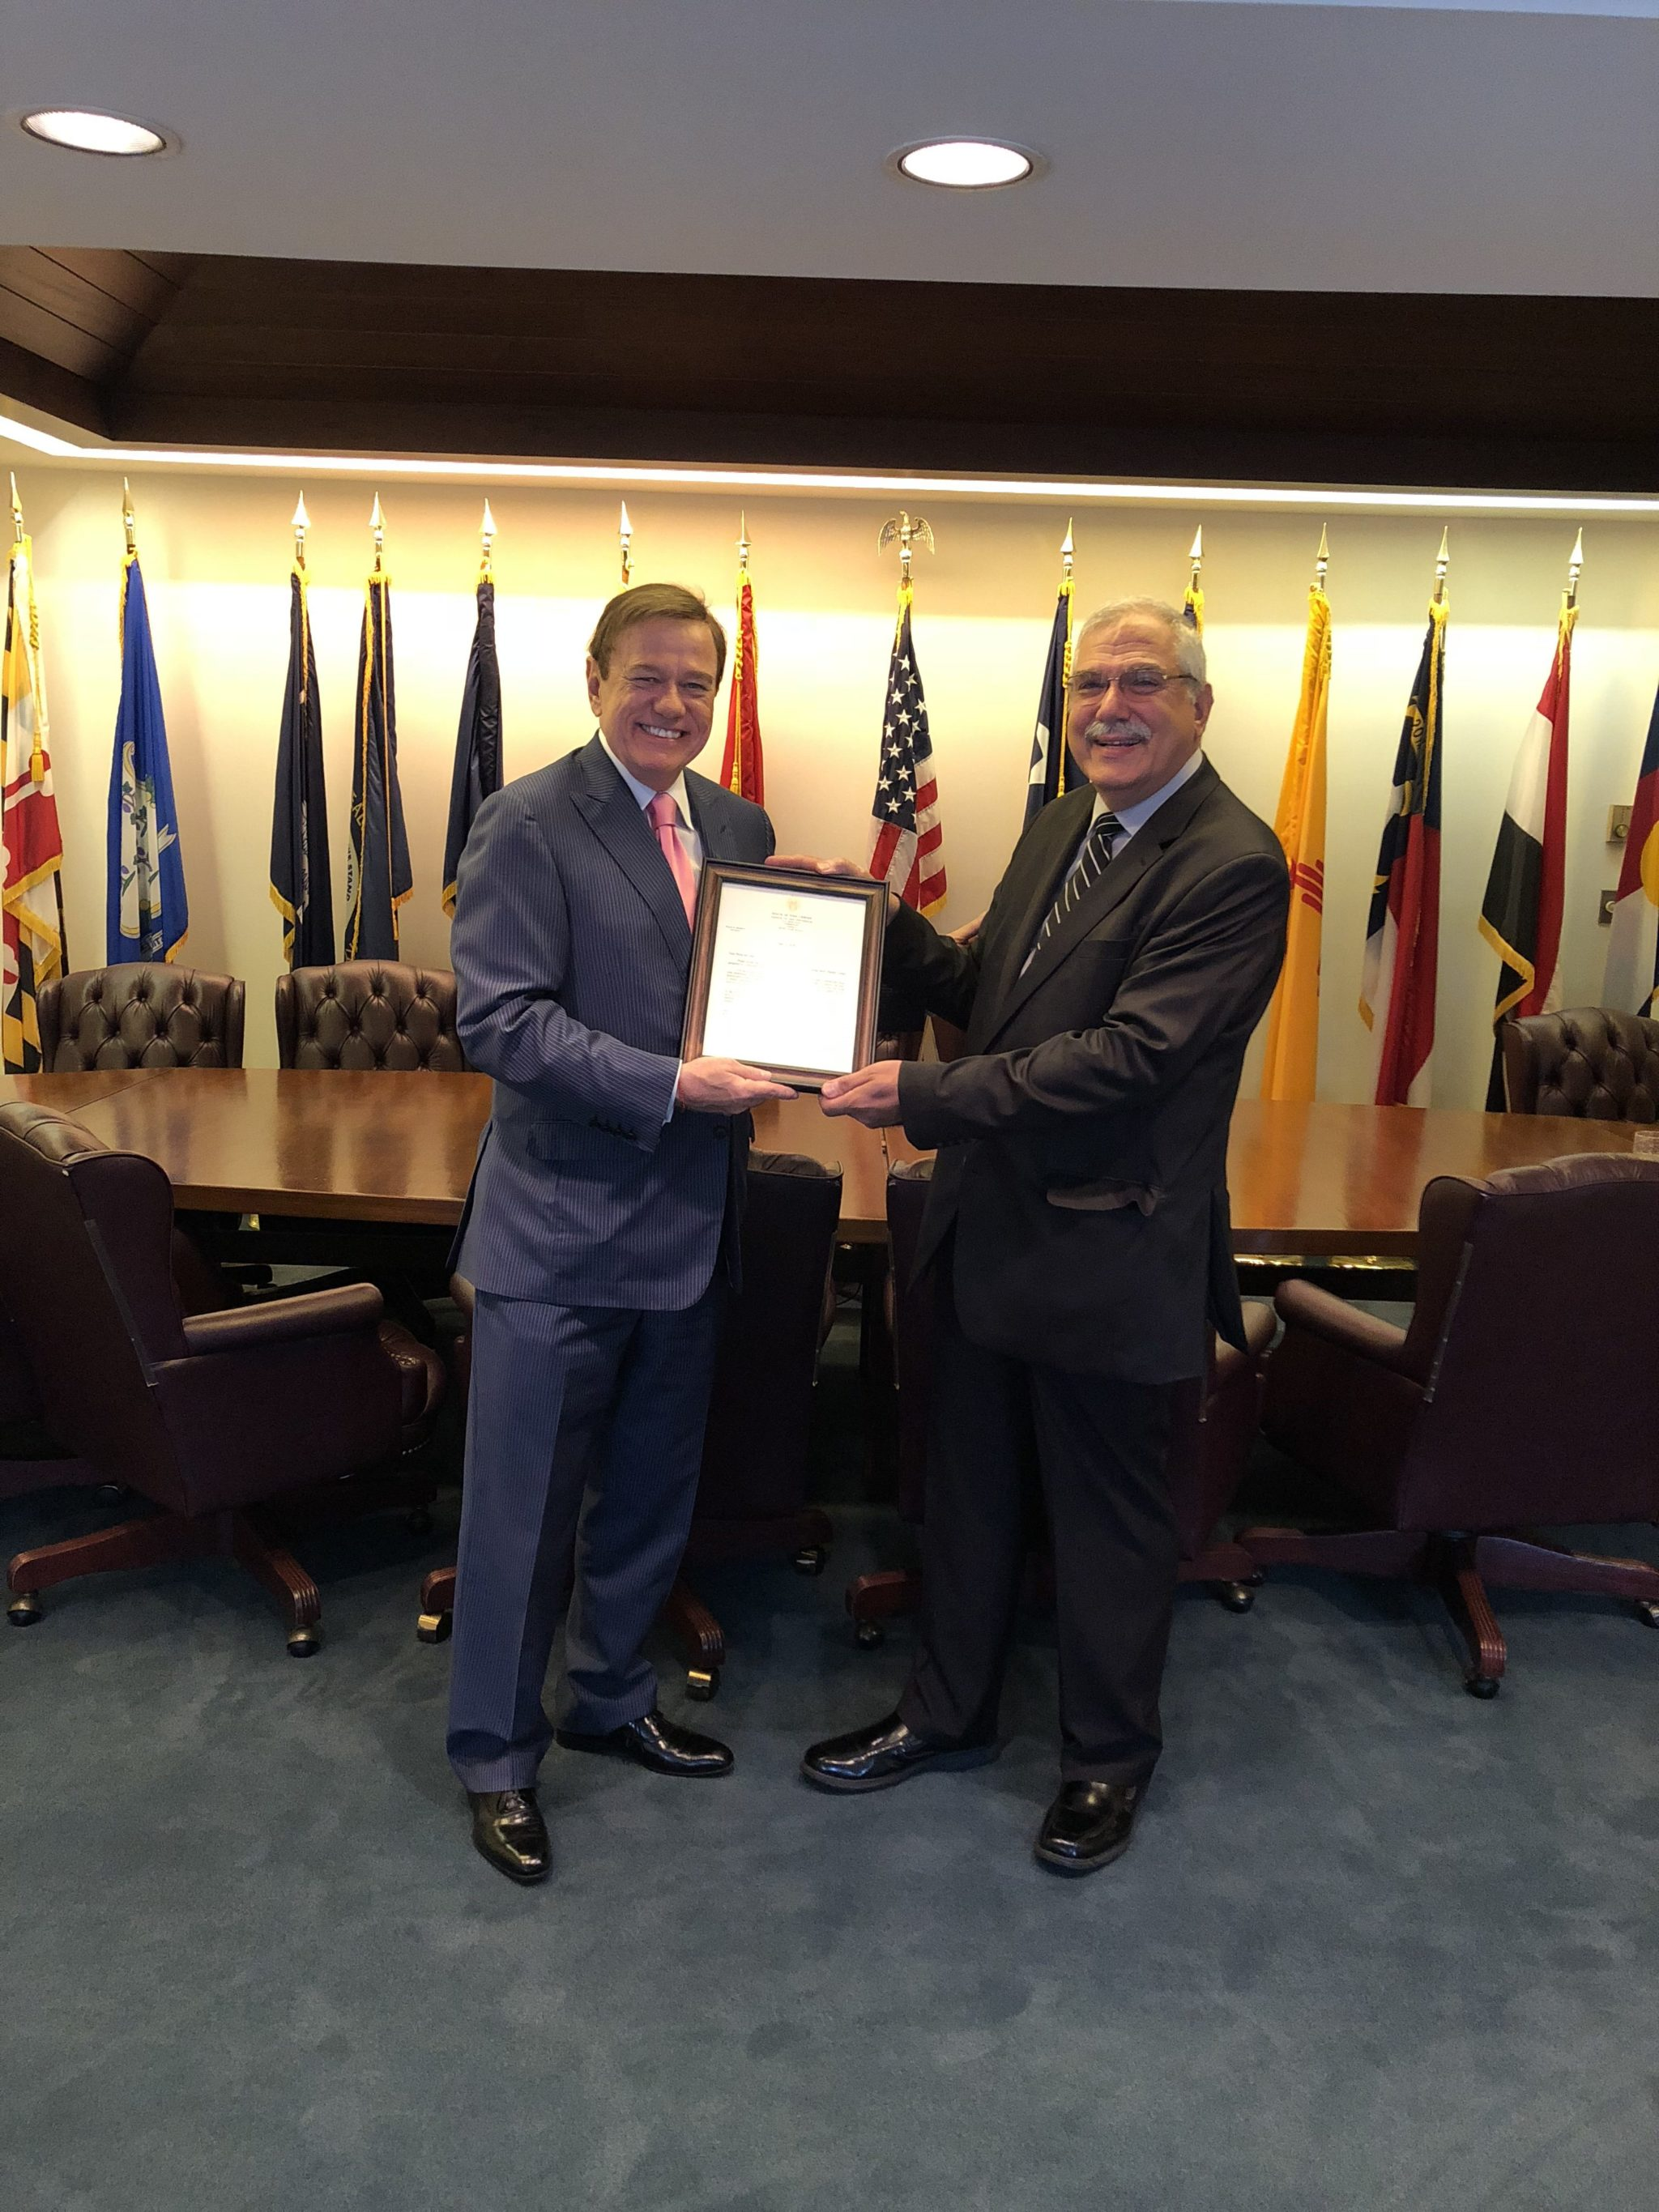 Robert Stack, President & CEO of Community Options presents the letter from Governor Murphy to Philip Lian.